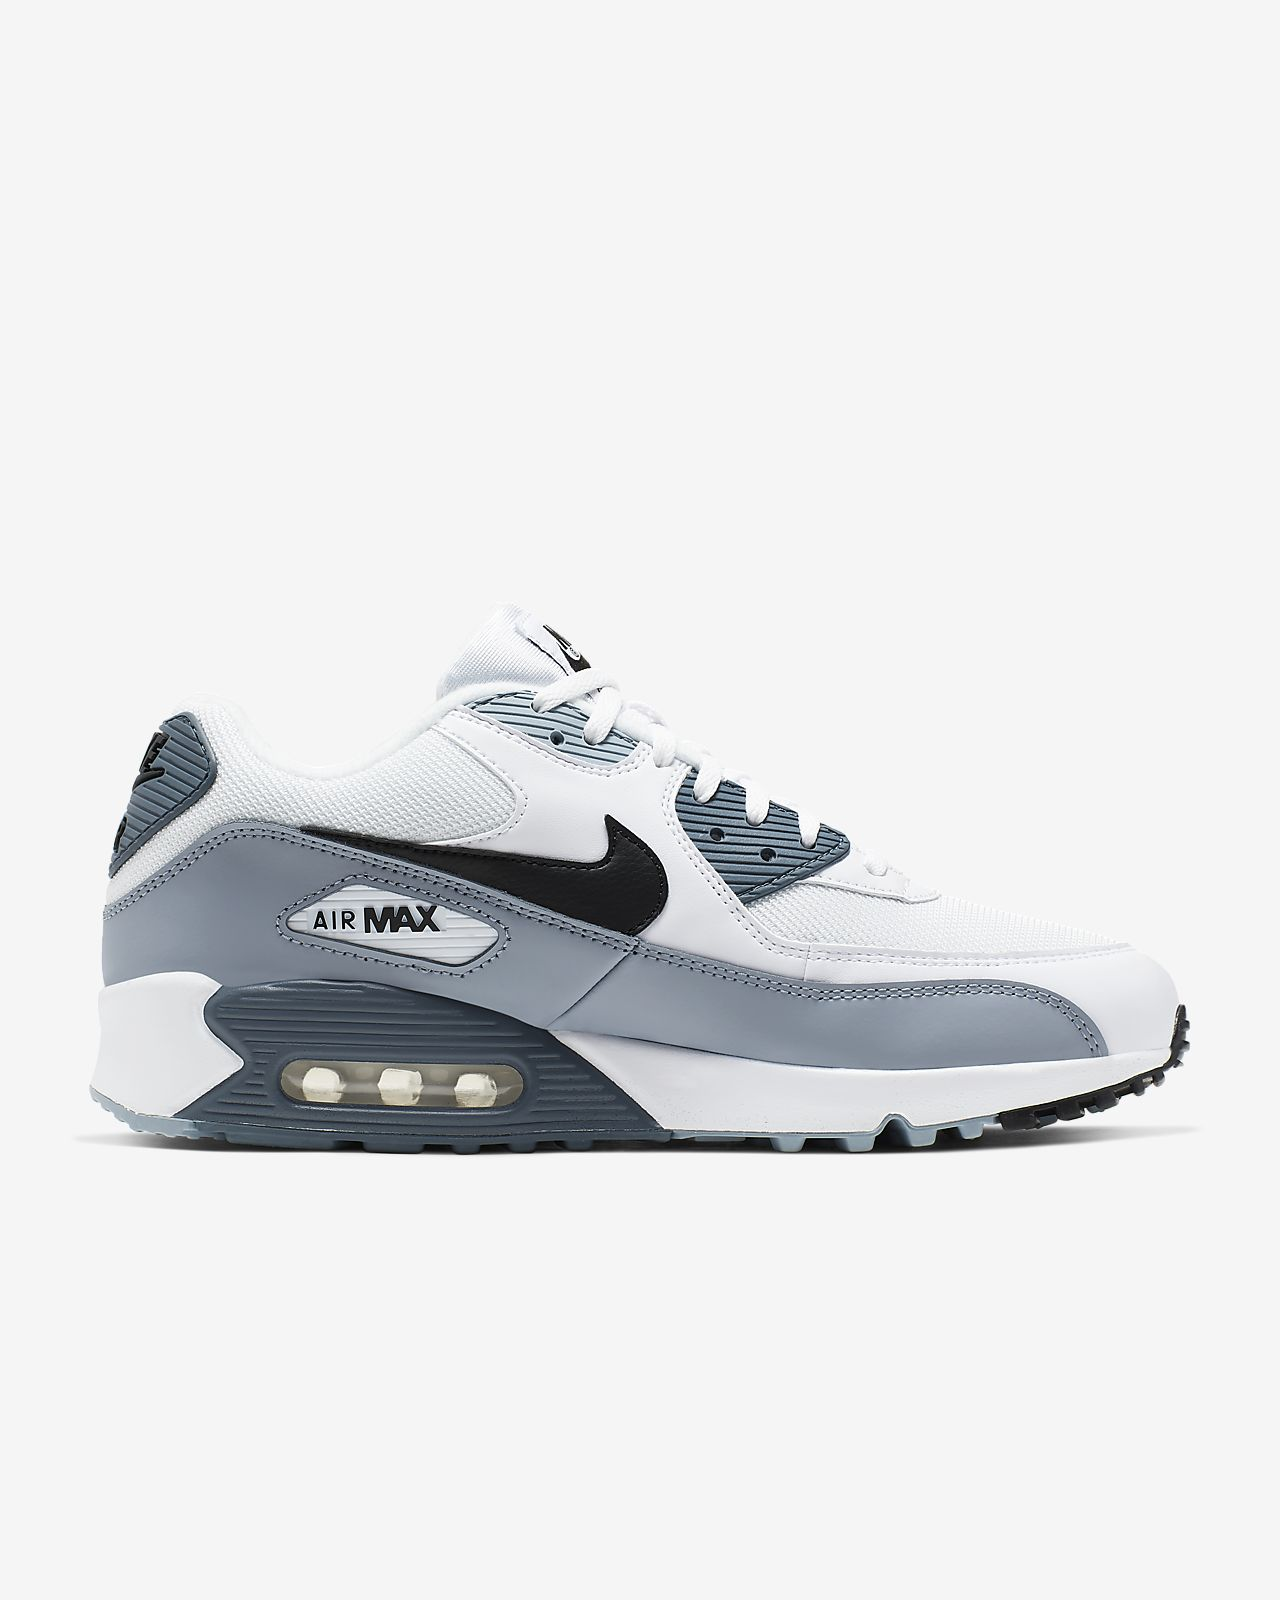 separation shoes 0e14d 4b85d ... Nike Air Max 90 Essential Men s Shoe